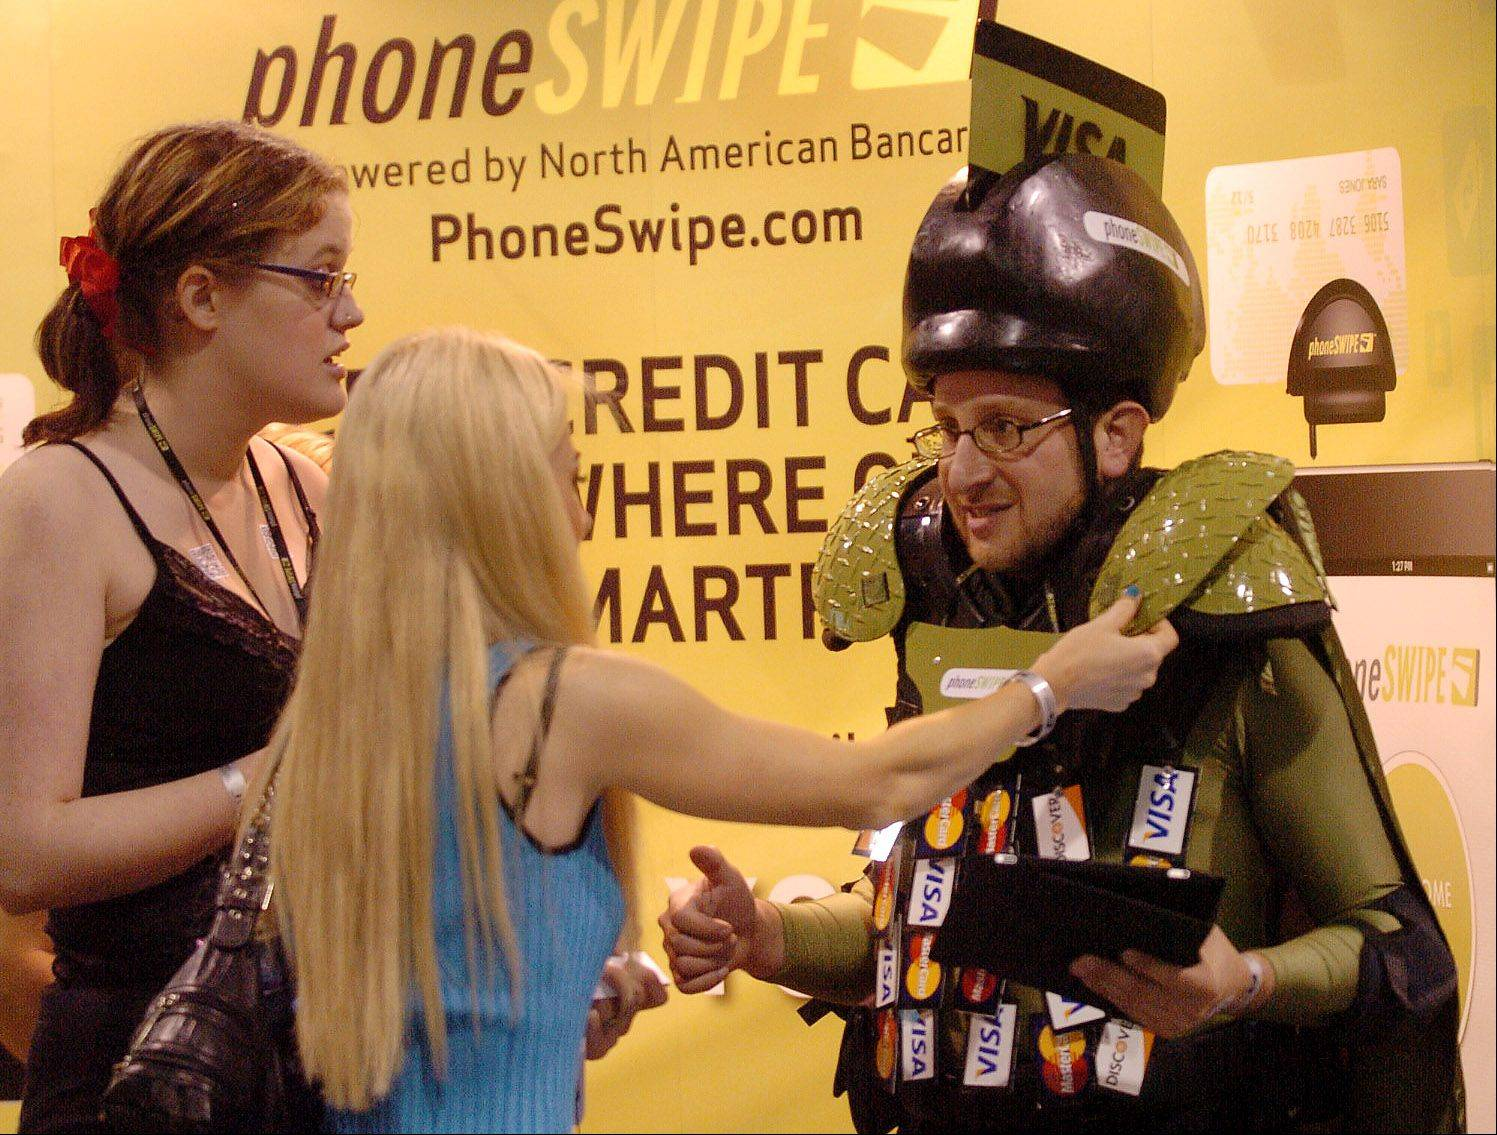 Kat Berry, left, and Anna Nowicka help Phone Swipe Man with his costume at the Wizard World Chicago Comic Con.